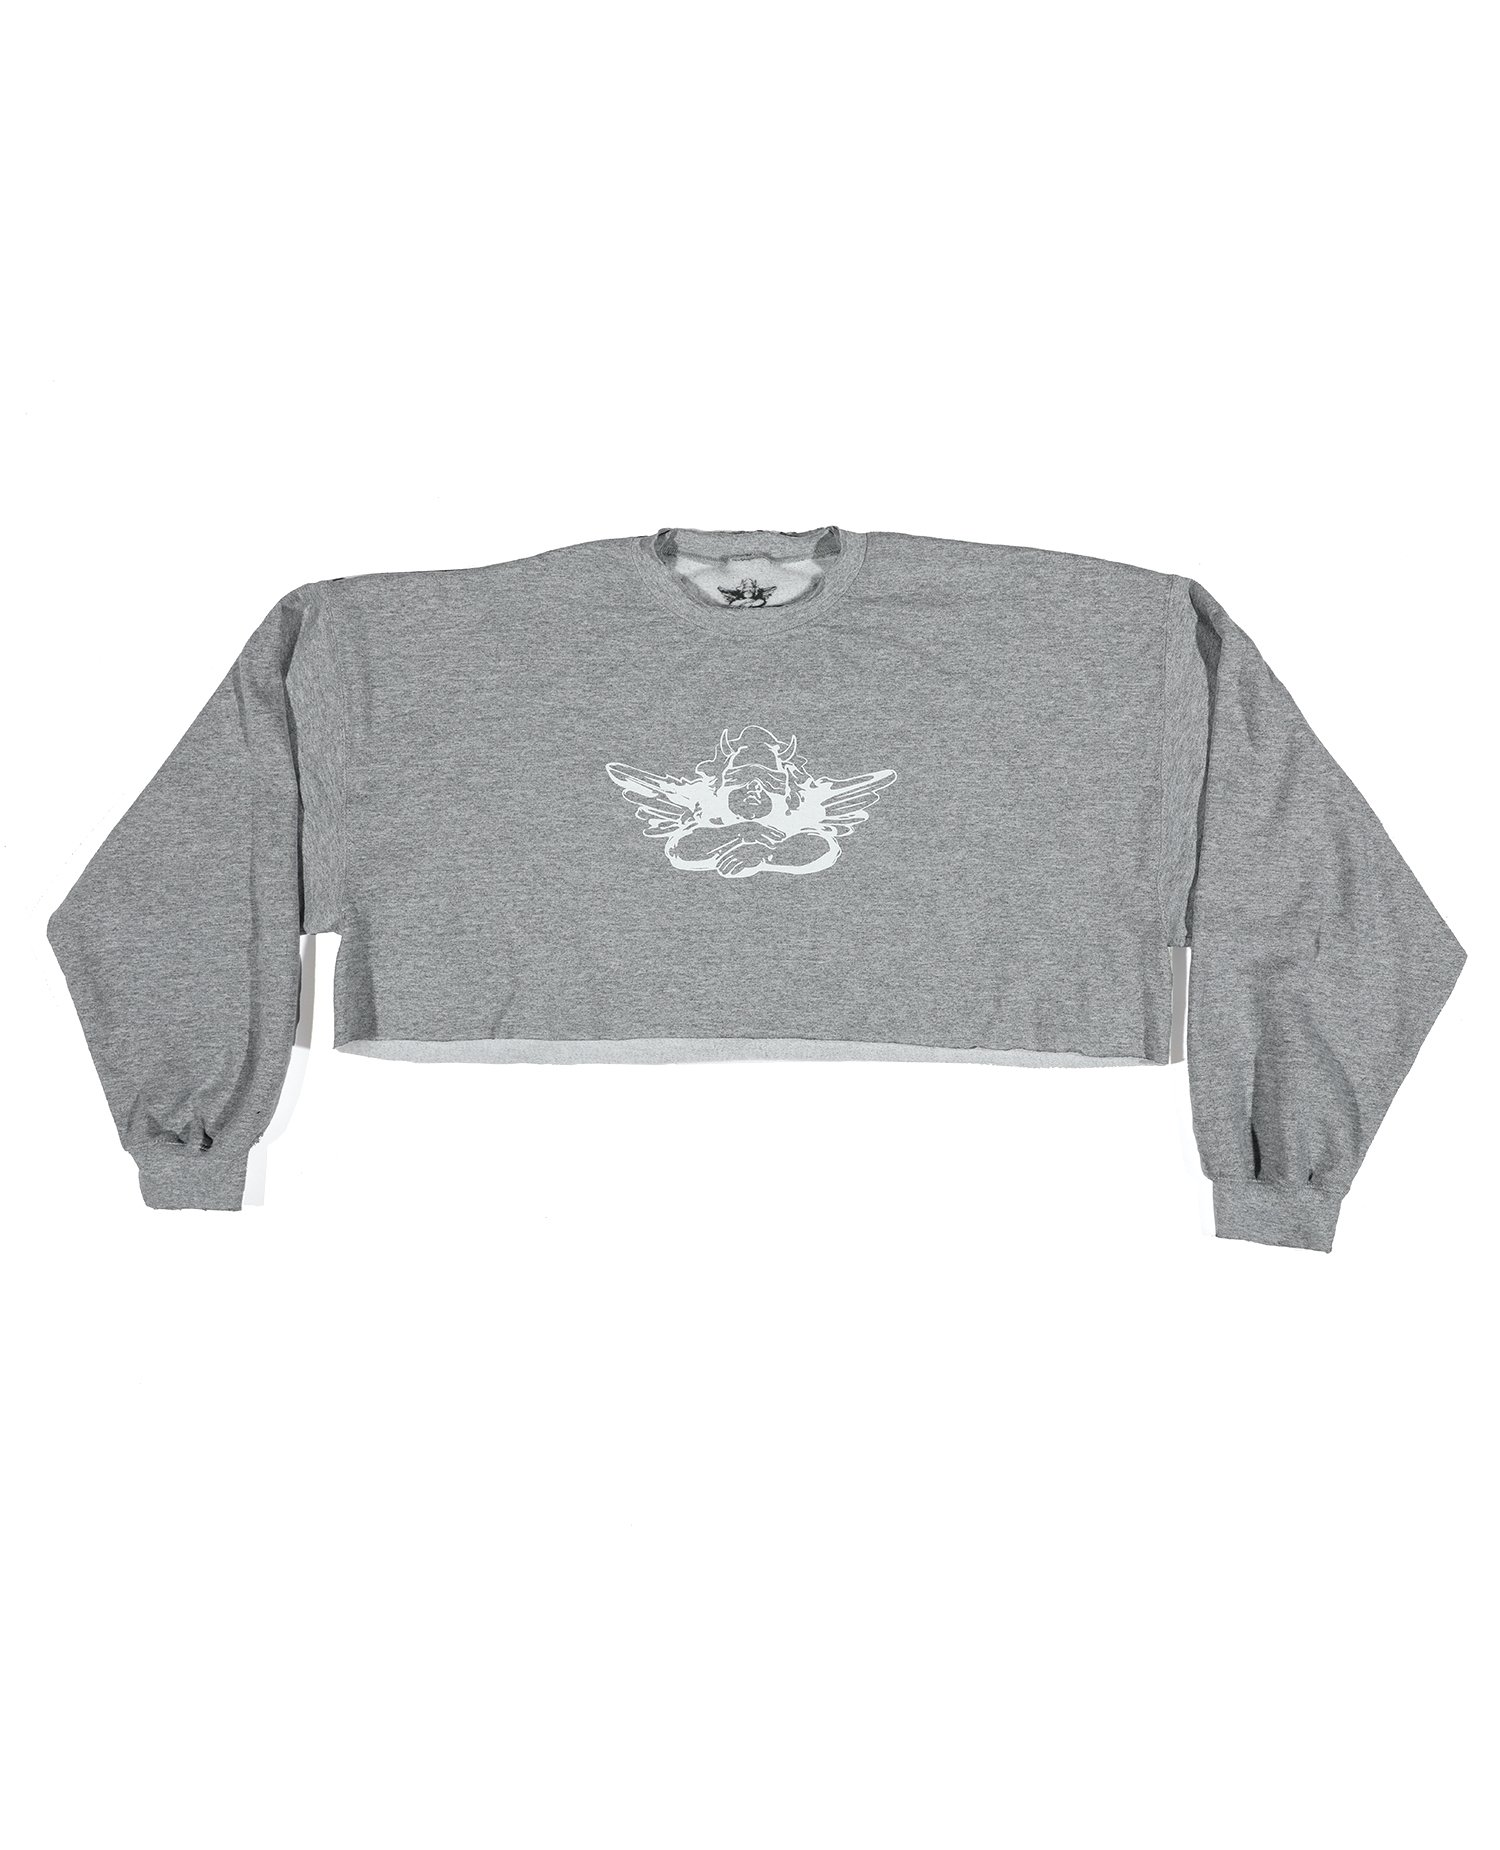 Match Made in Heaven Cropped Crewneck by Boys Lie, available on boyslieofficial.com for $105 Kylie Jenner Top Exact Product